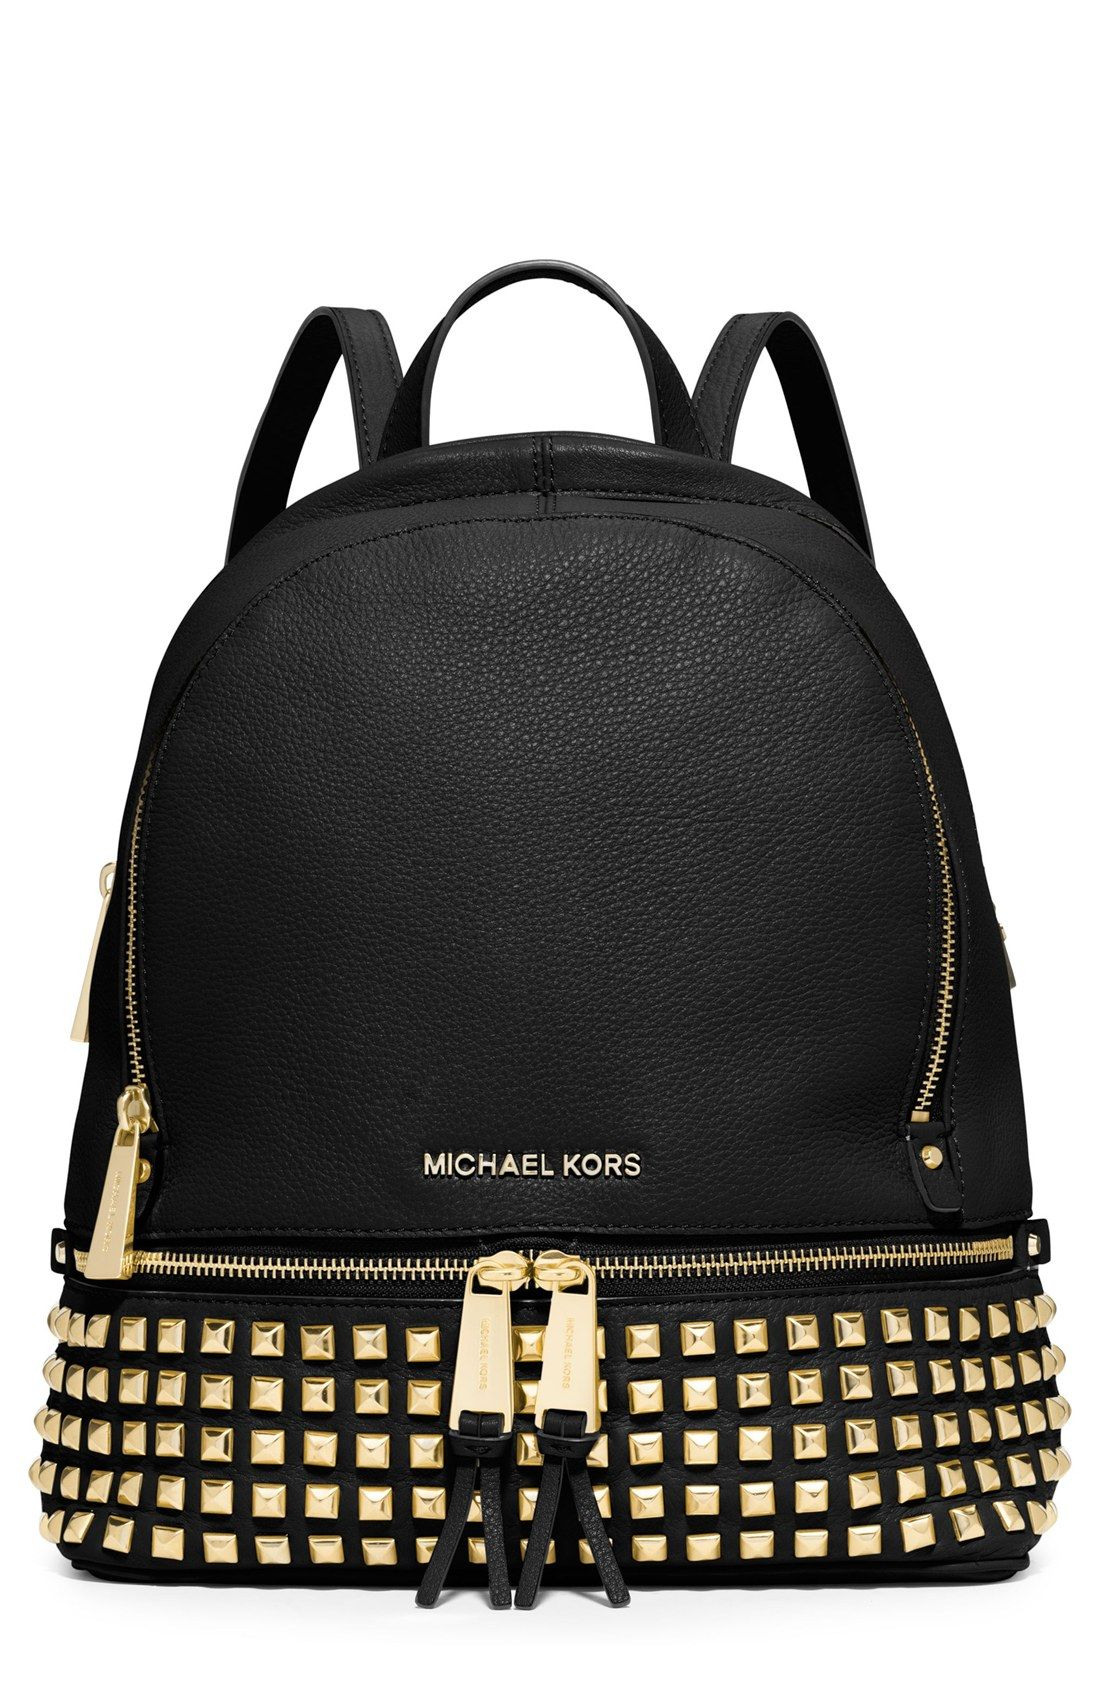 512e1bcd580e8d Rows of gold pyramid studs and tasseled zippers give this Michael Kors  backpack a city chic edge.